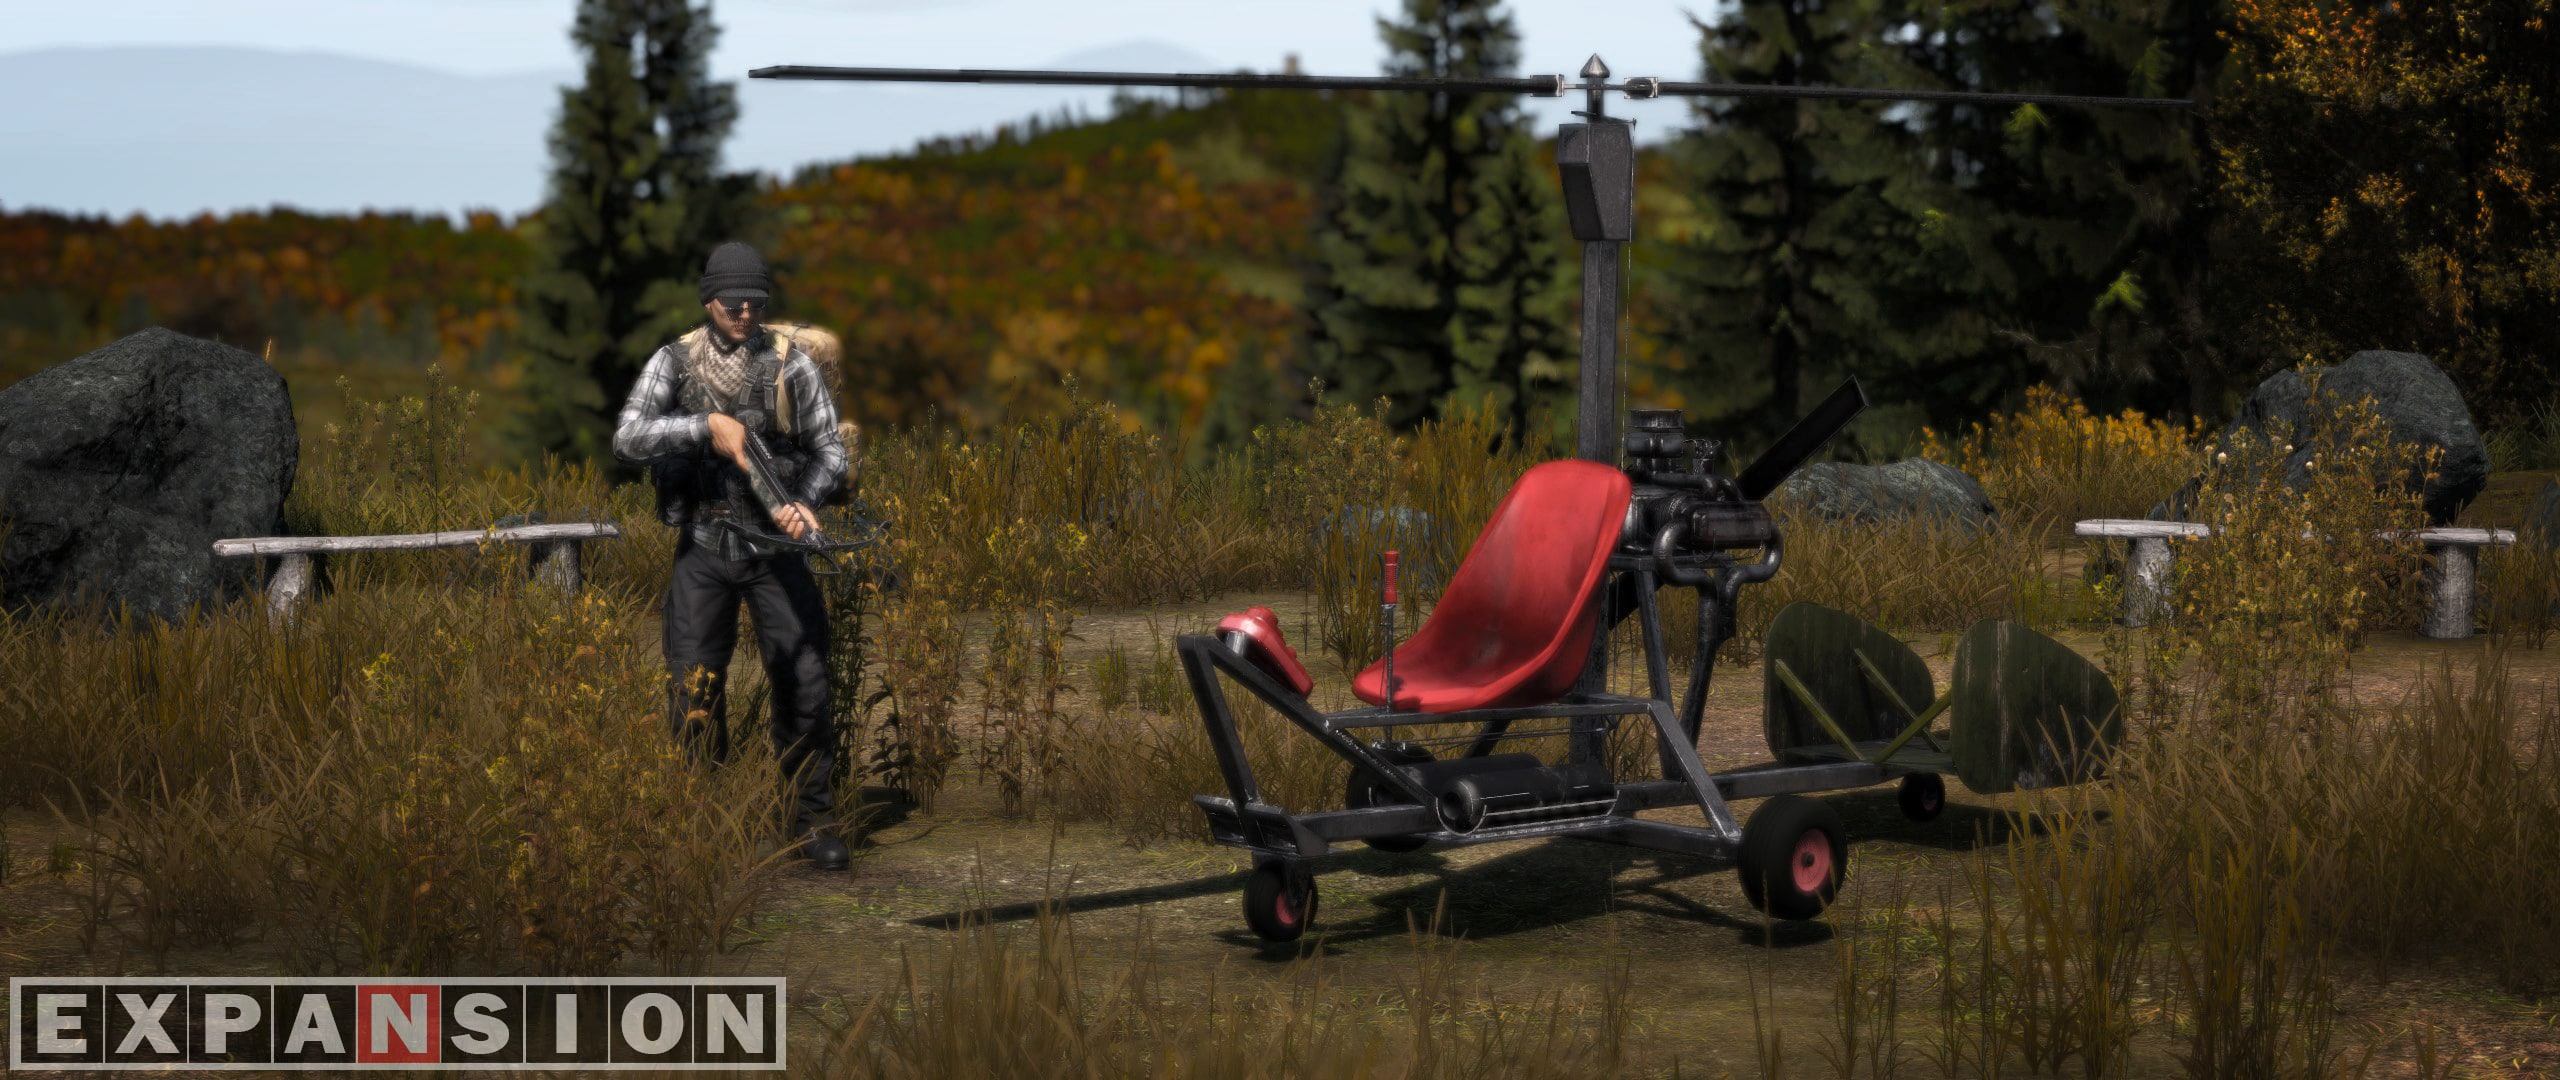 Dayz Expansion mini Helicopter